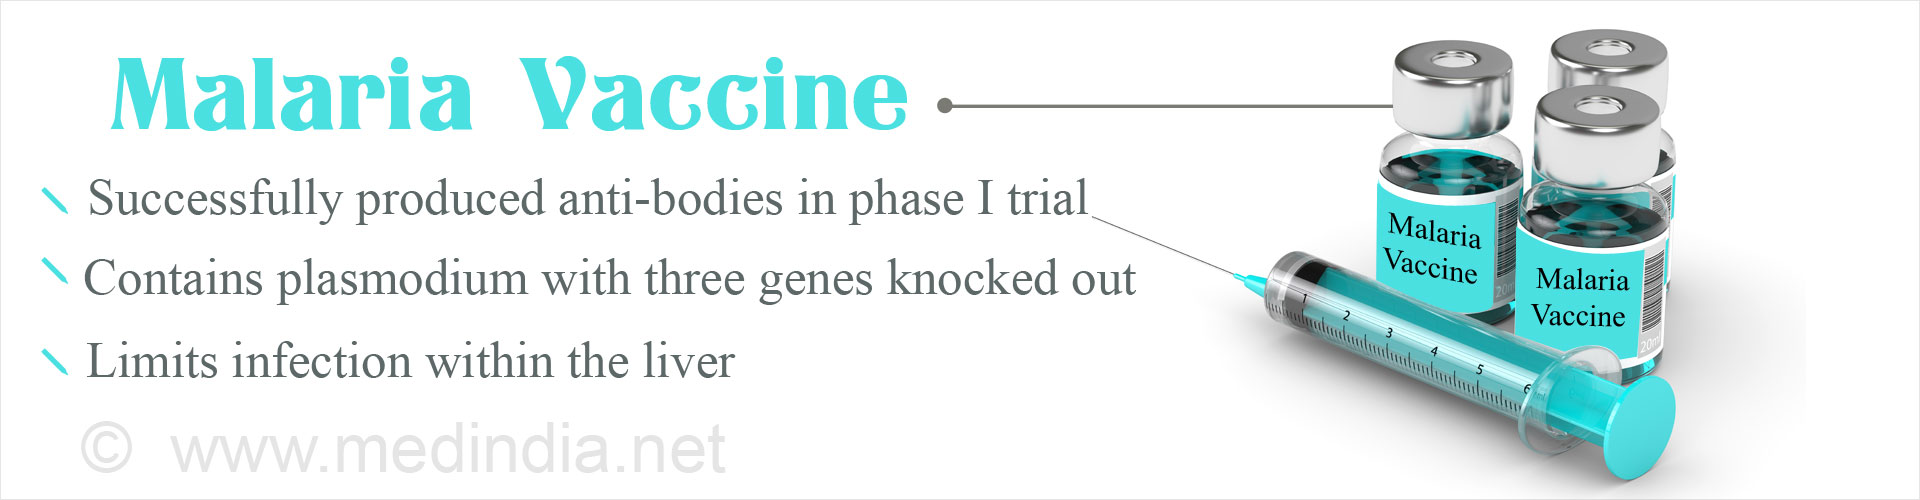 Malaria Vaccine With Three Genes Altered Passes Phase 1 Human Trial